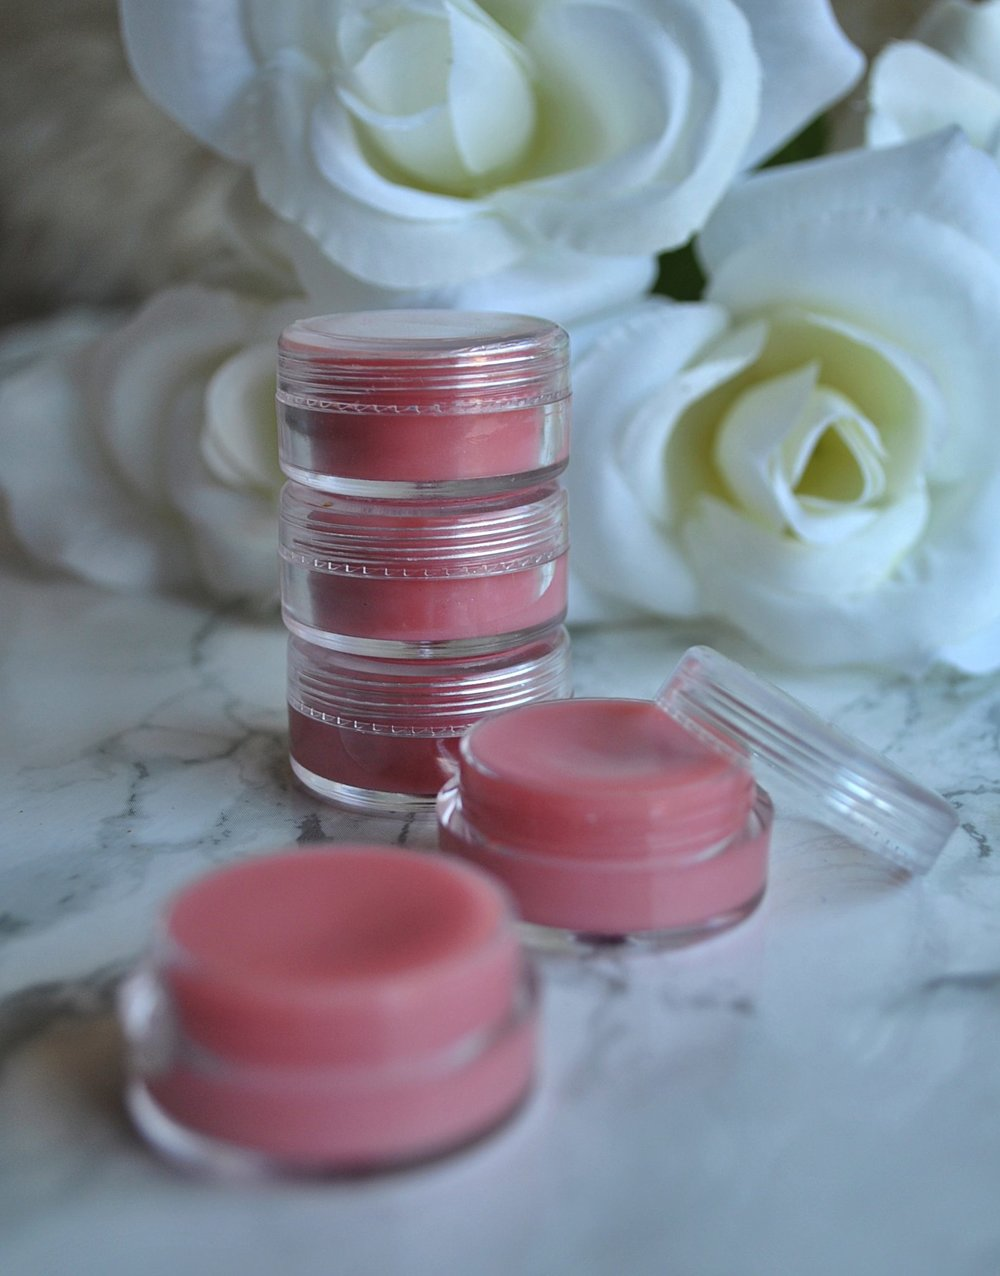 The-Hungarian-Brunette-DIY-Homemade-Lip-balm.jpg